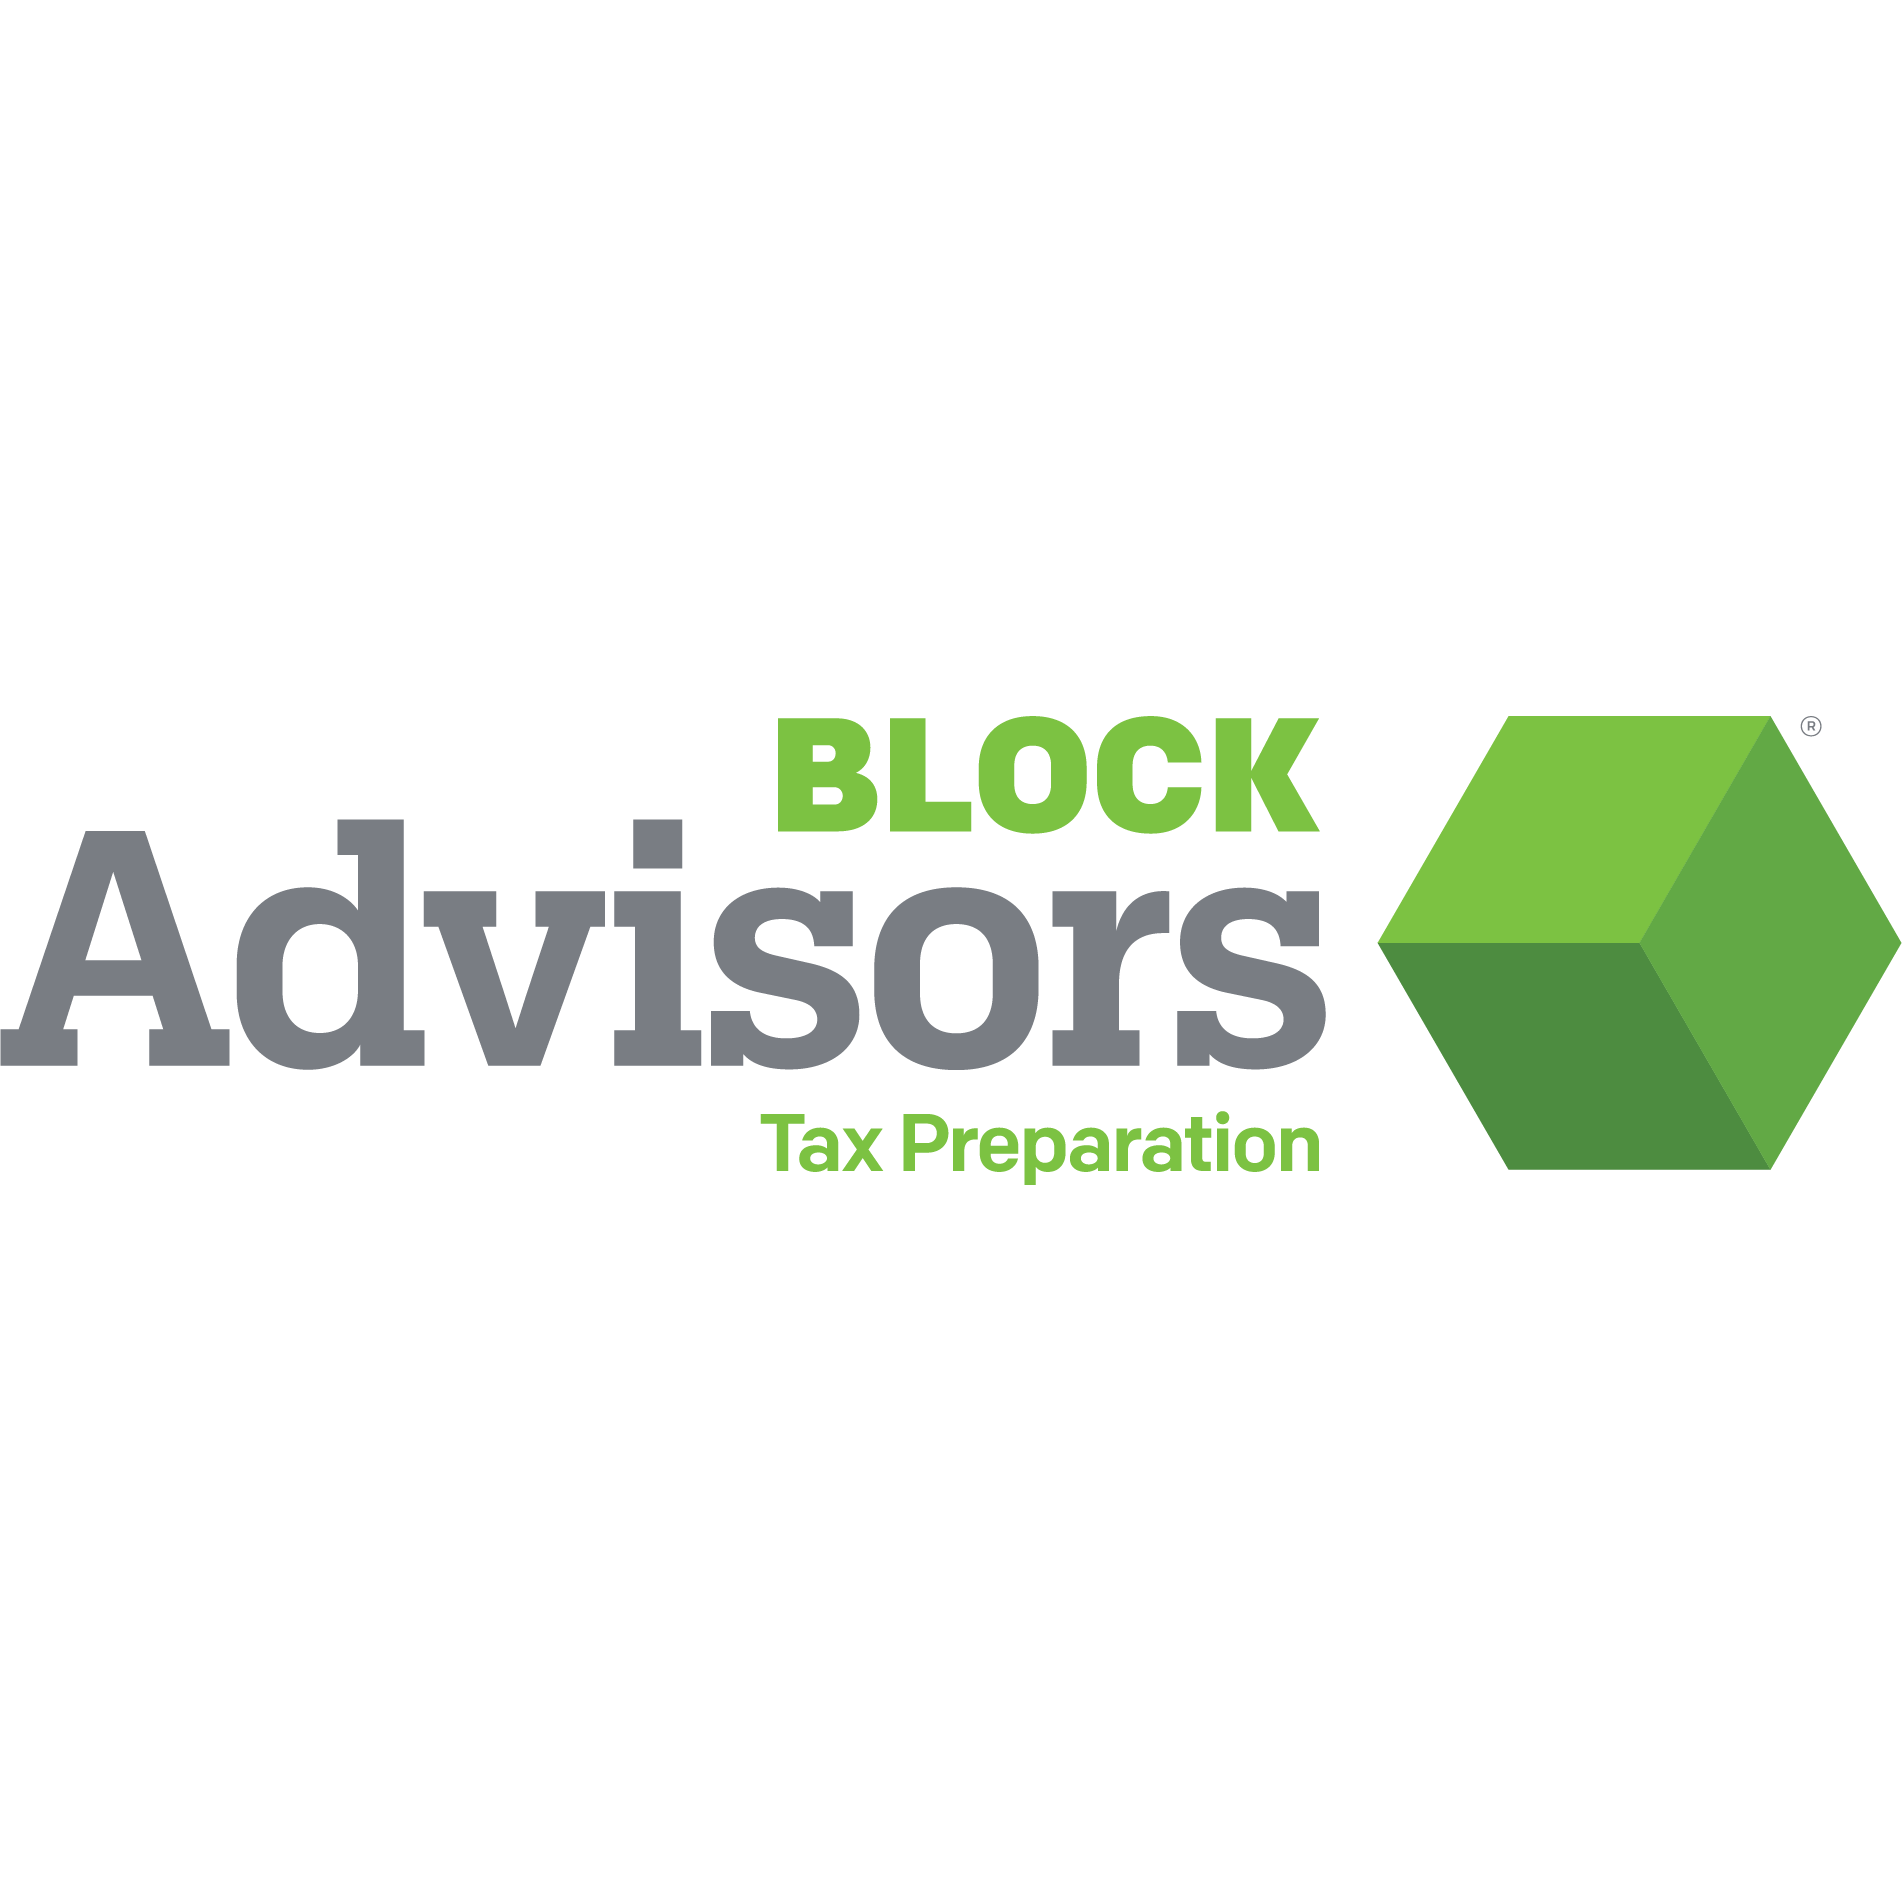 Tax Preparation Service in MI Allen Park 48101 Block Advisors Fairlane Green 3127 Fairlane Dr Ste 23 (313)565-3434